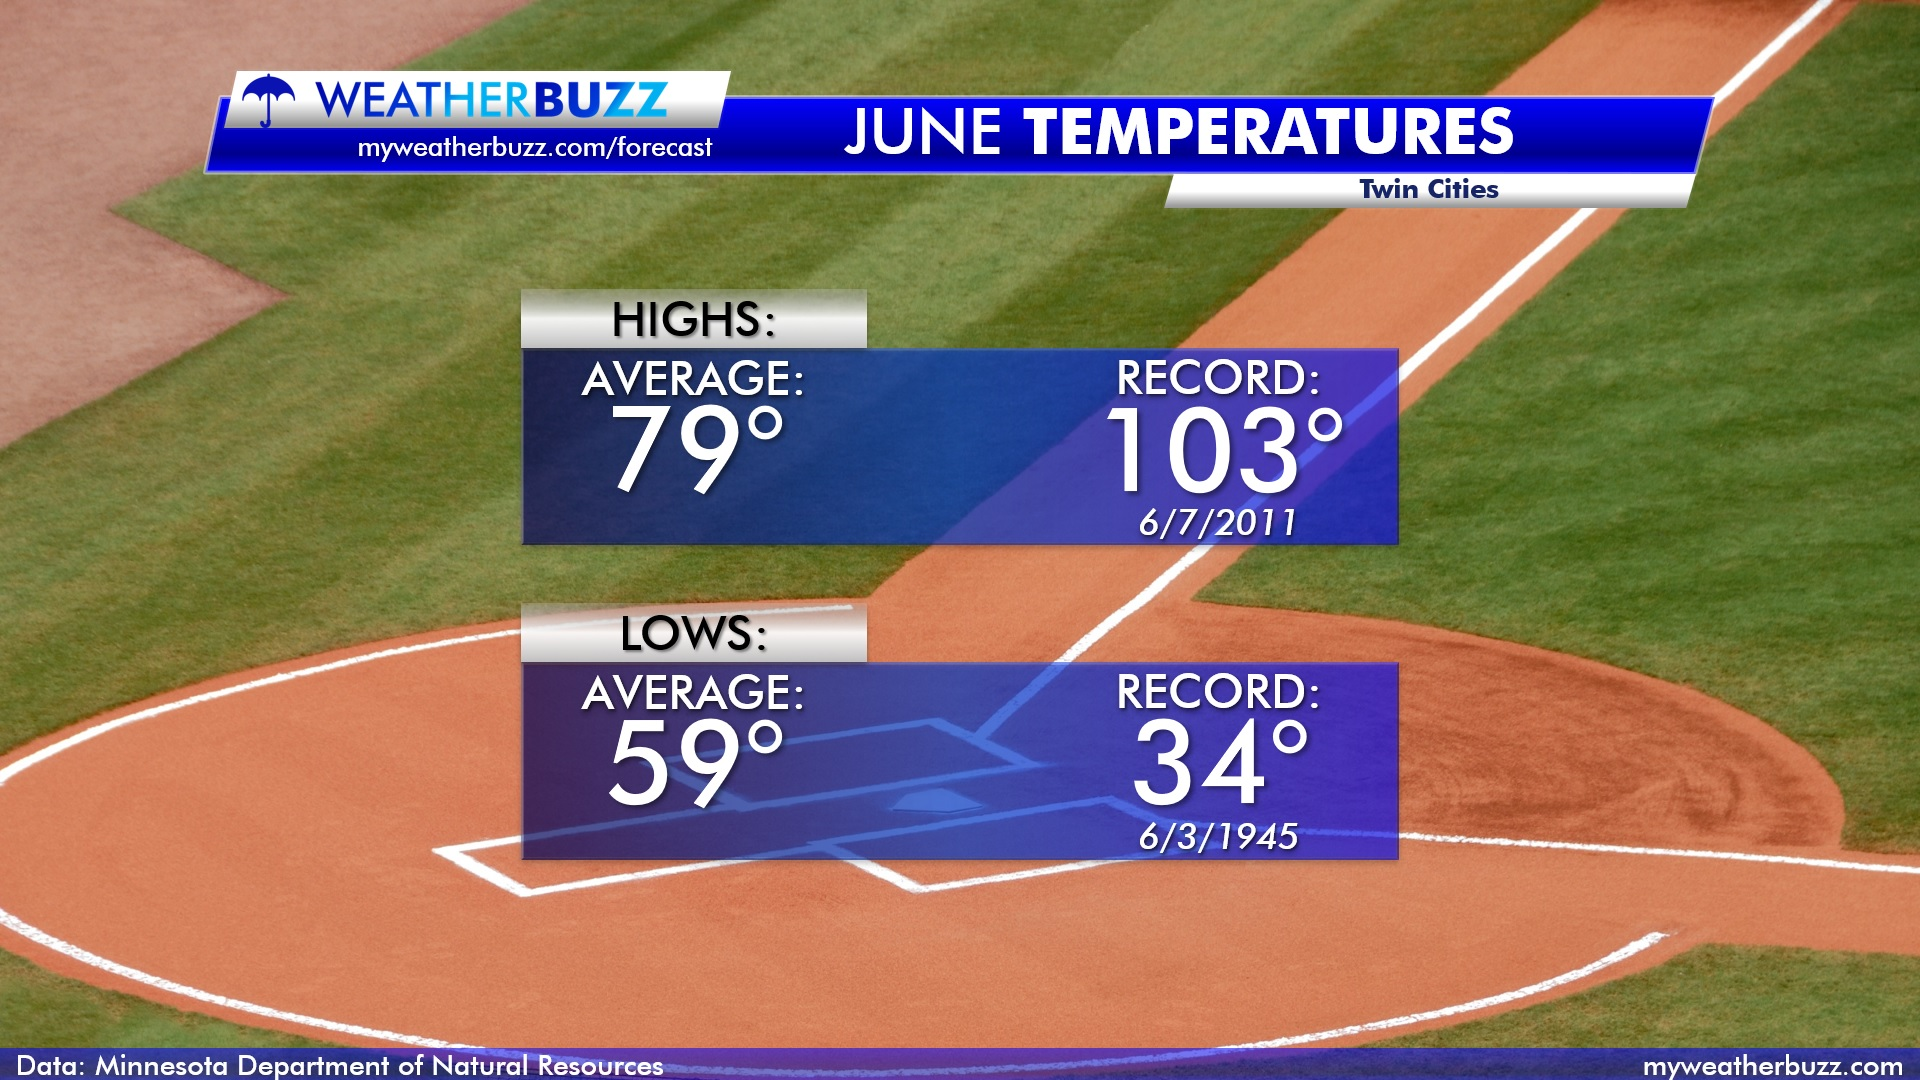 Temperatures in June for the Twin Cities